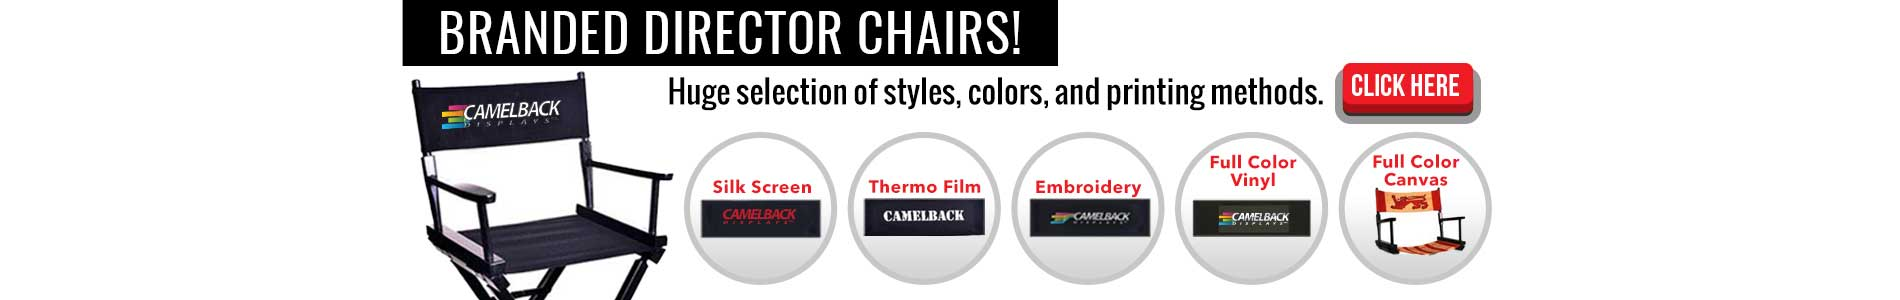 Branded Director Chairs